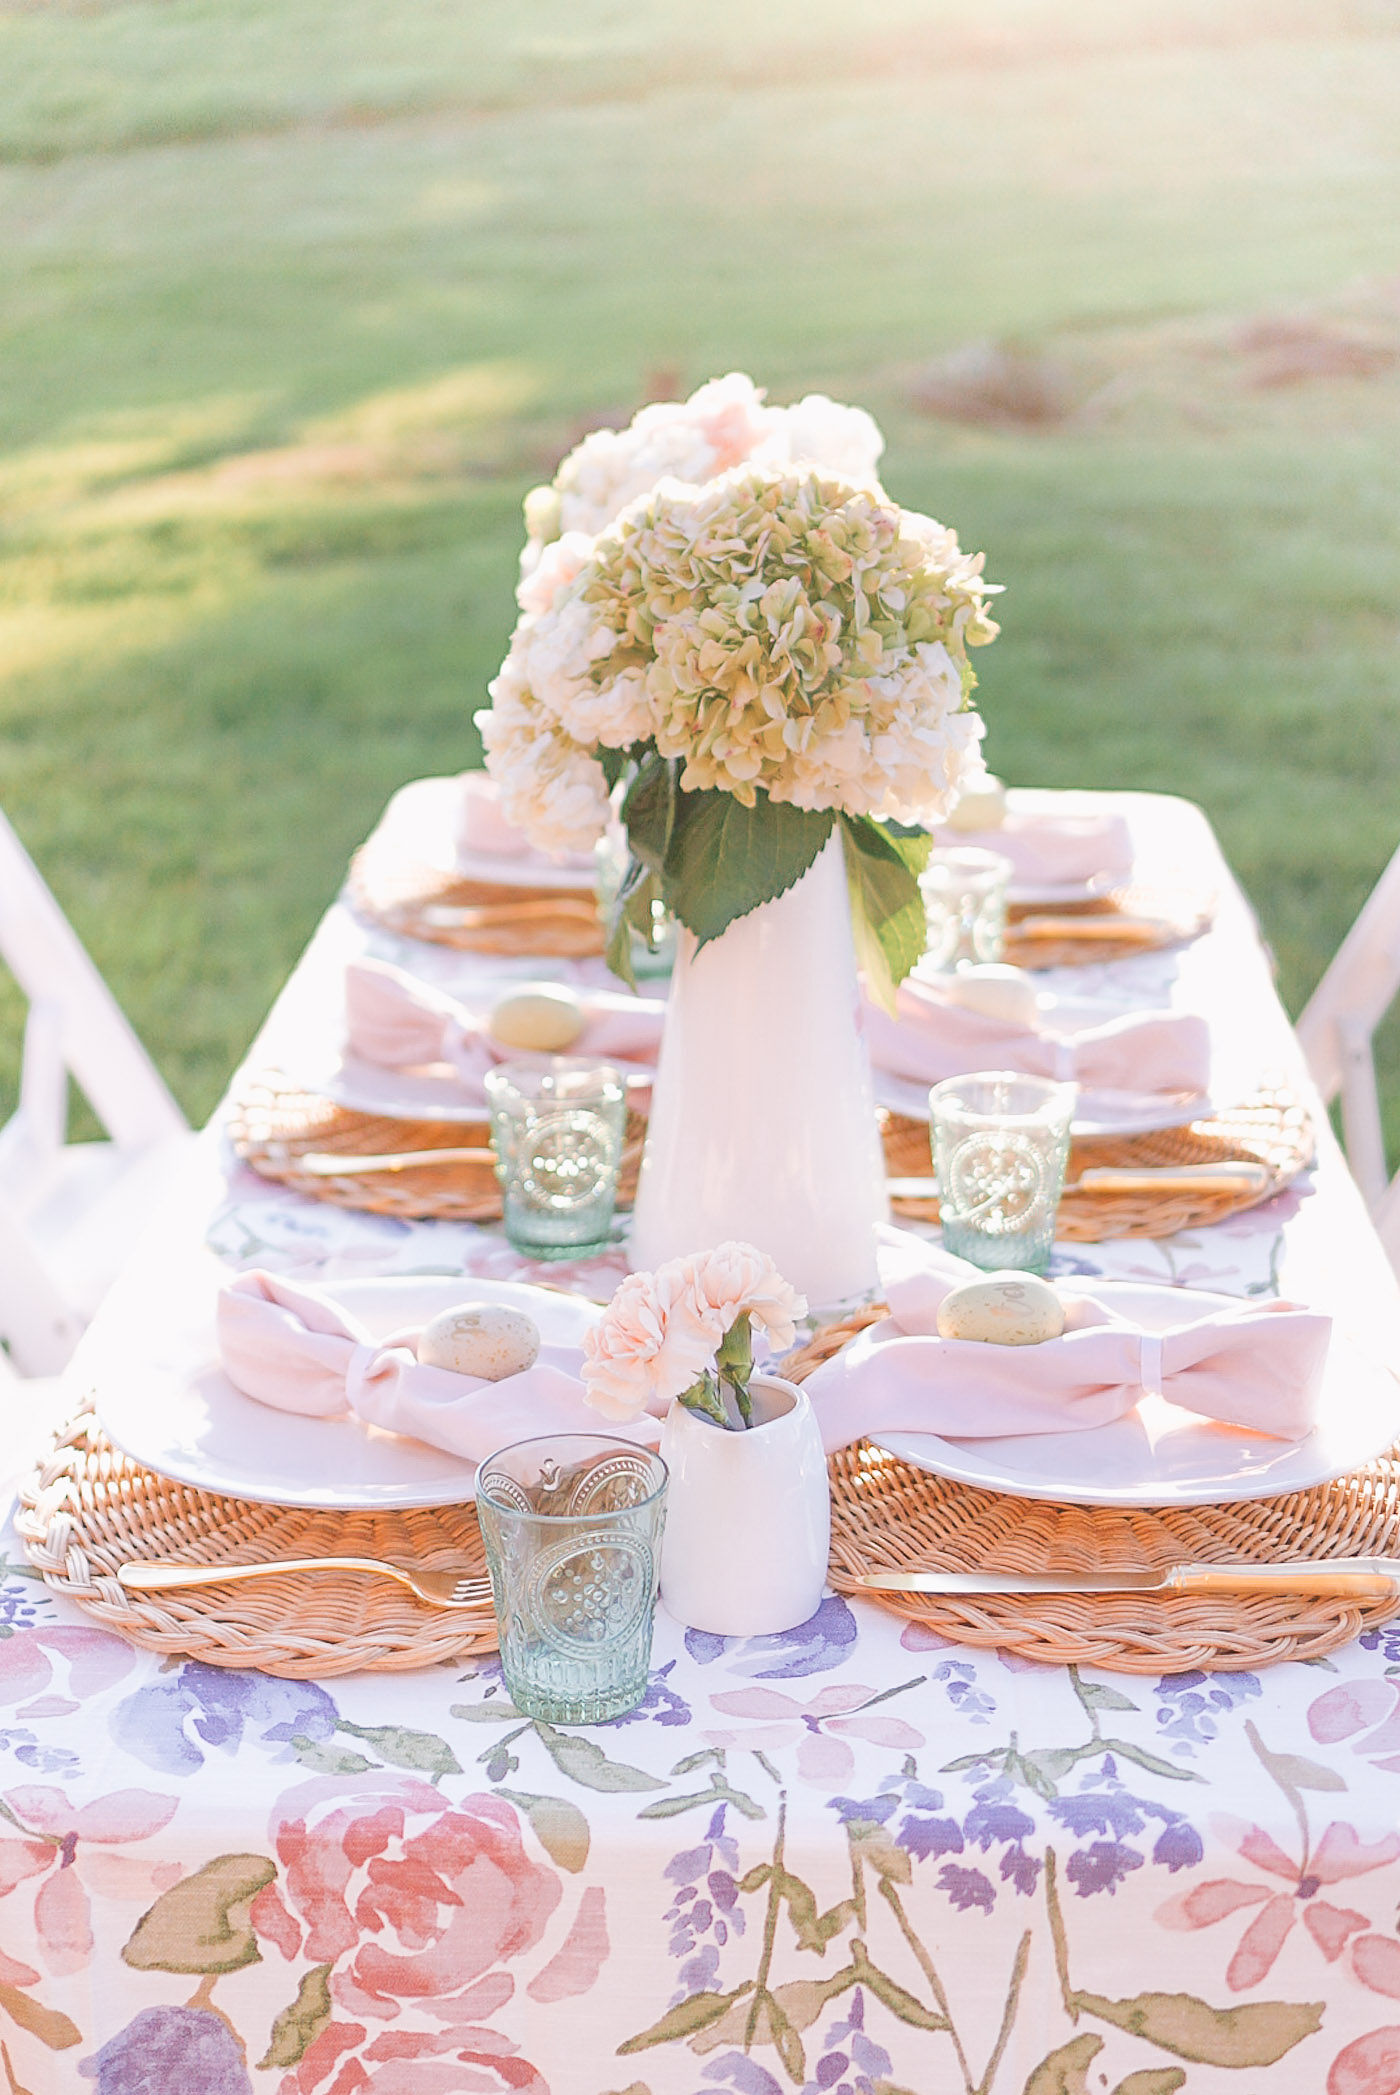 spring-easter-table-setting-inspiration